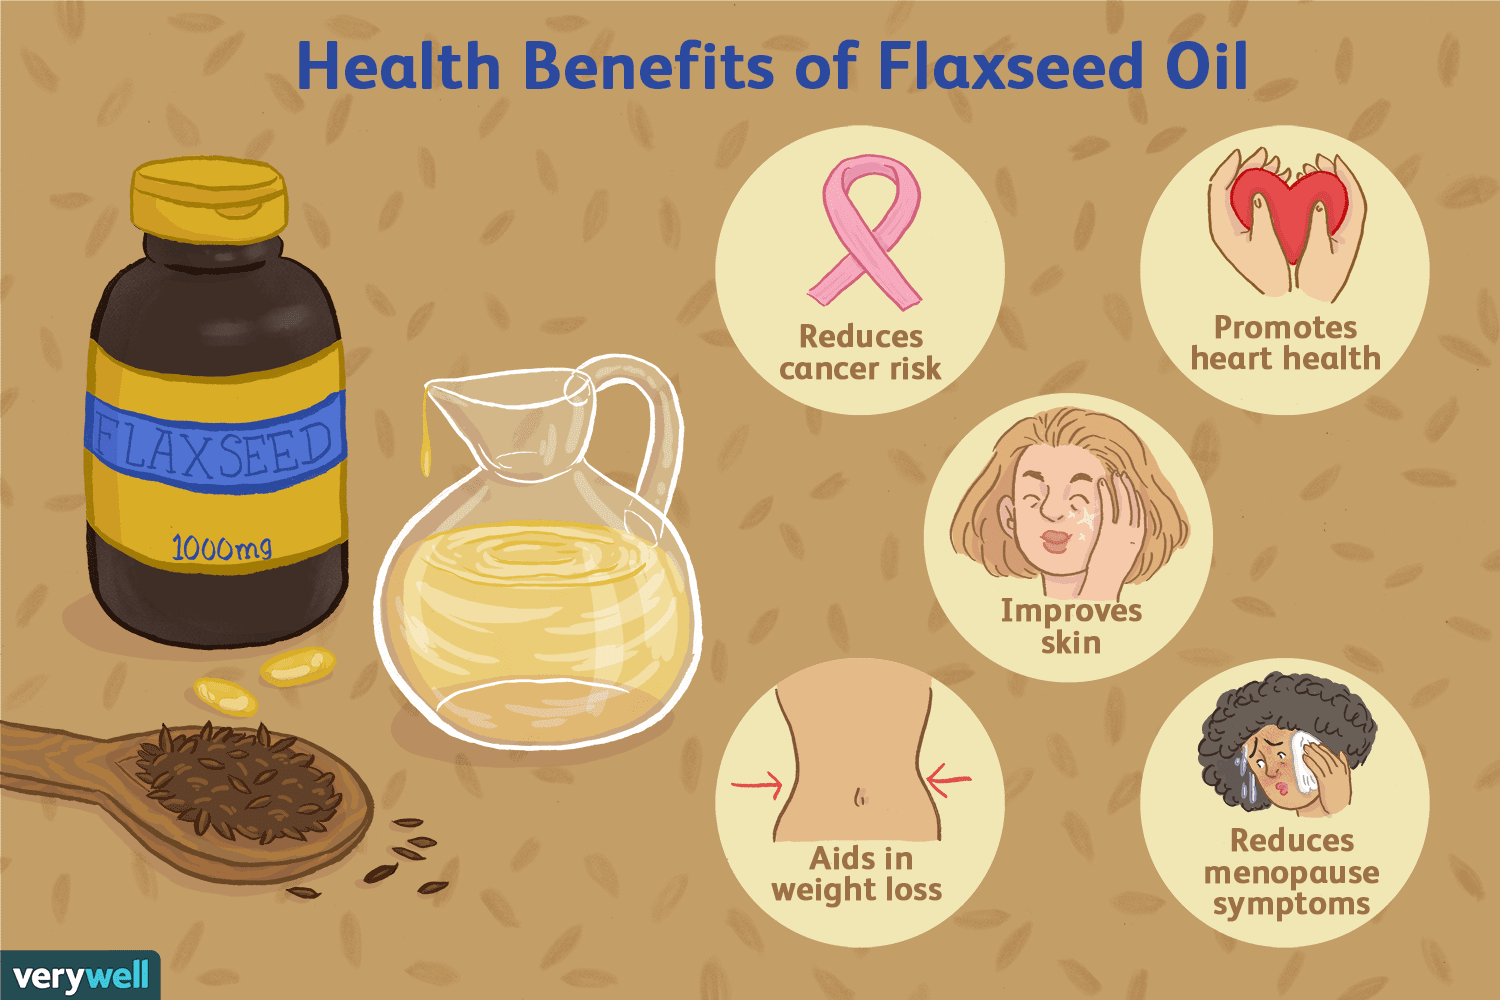 Flaxseed Oil: Benefits, Side Effects, Dosage, and Interactions